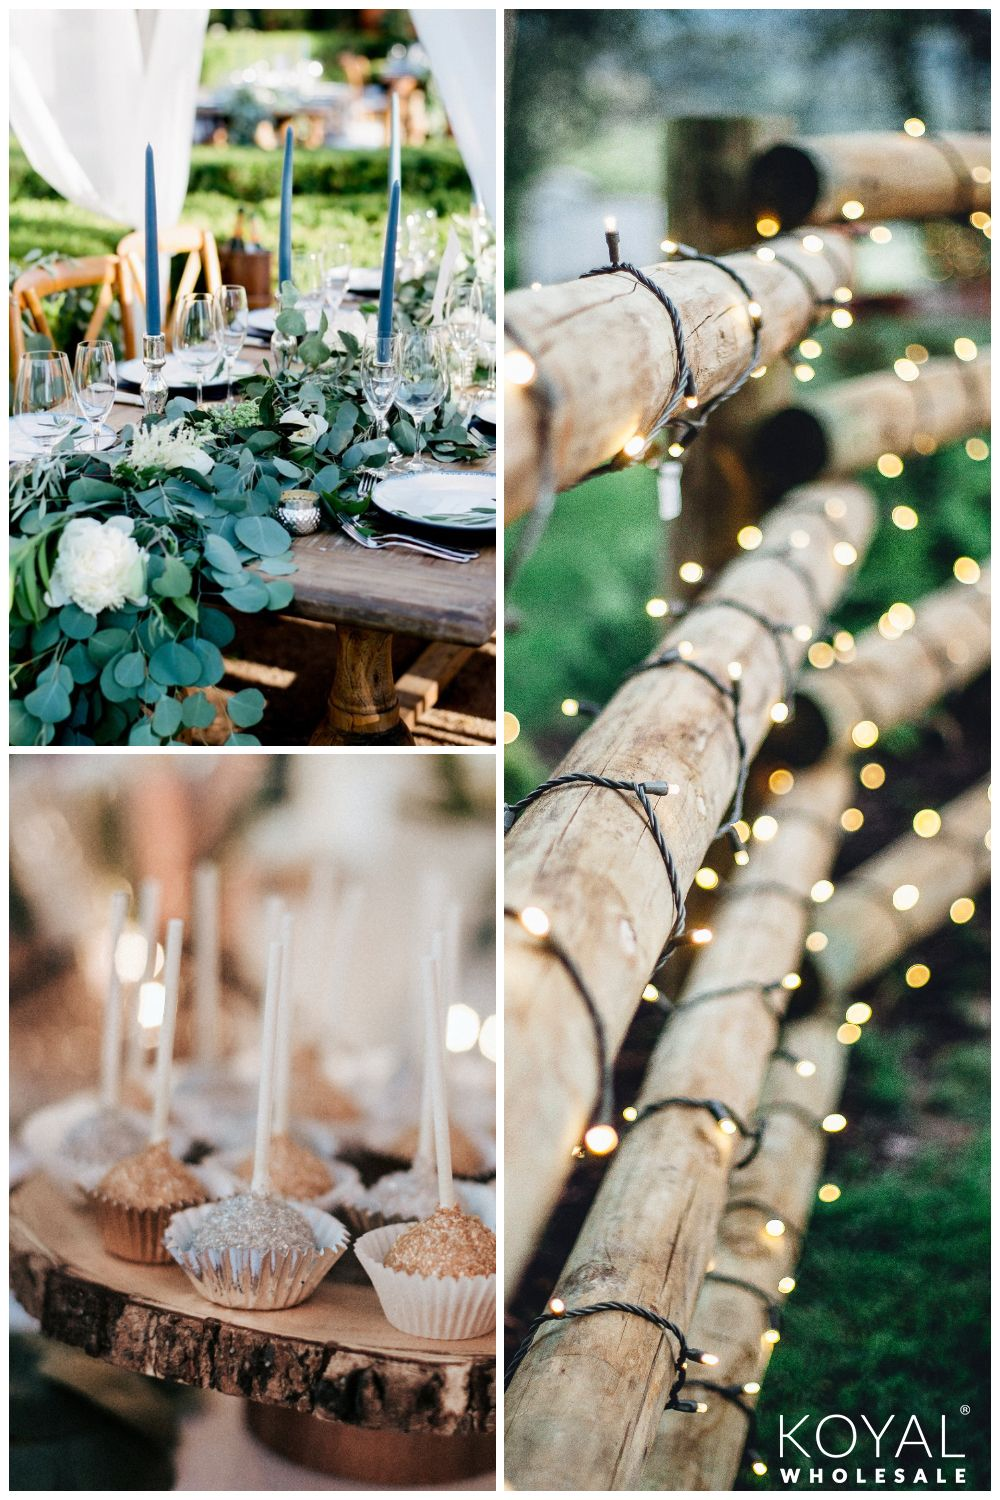 Wedding Supplies Forest Themed Wedding Make Your Special Day Perfect In 2020 Backyard Wedding Wedding Supplies Wholesale Wedding